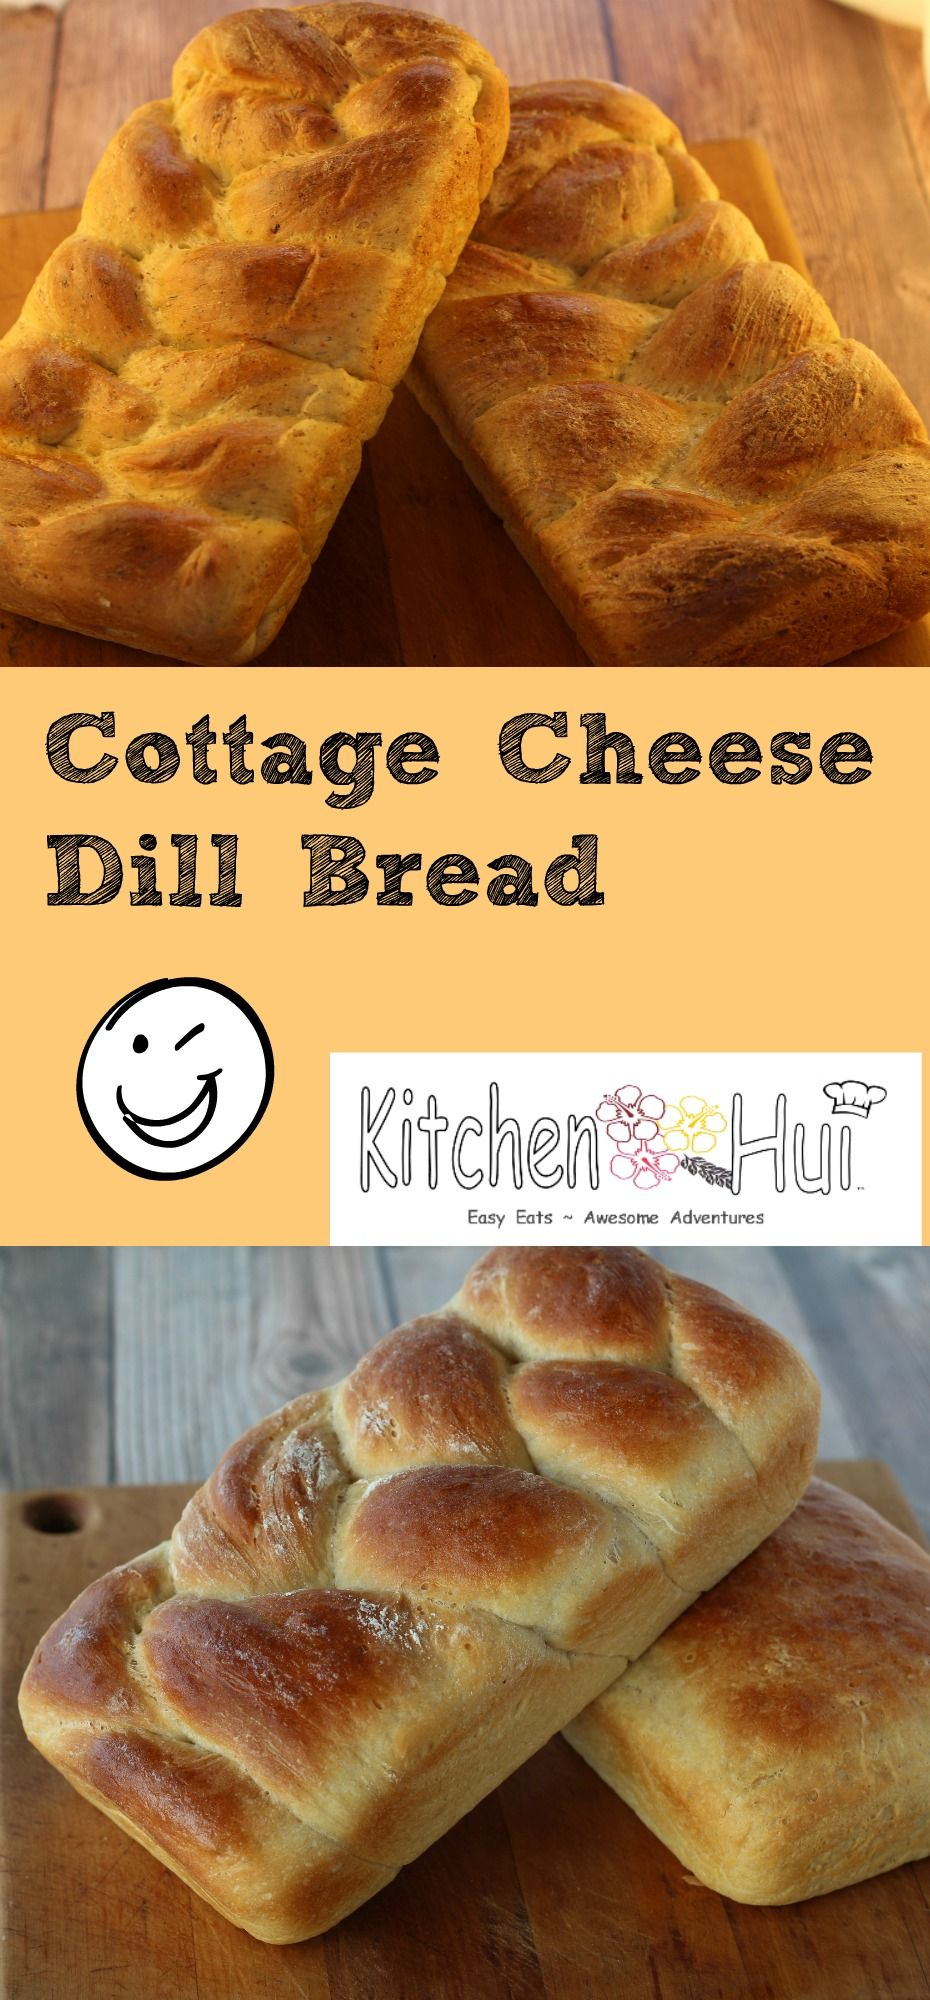 Easy To Make Bread With Cottage Cheese And Dill Weed